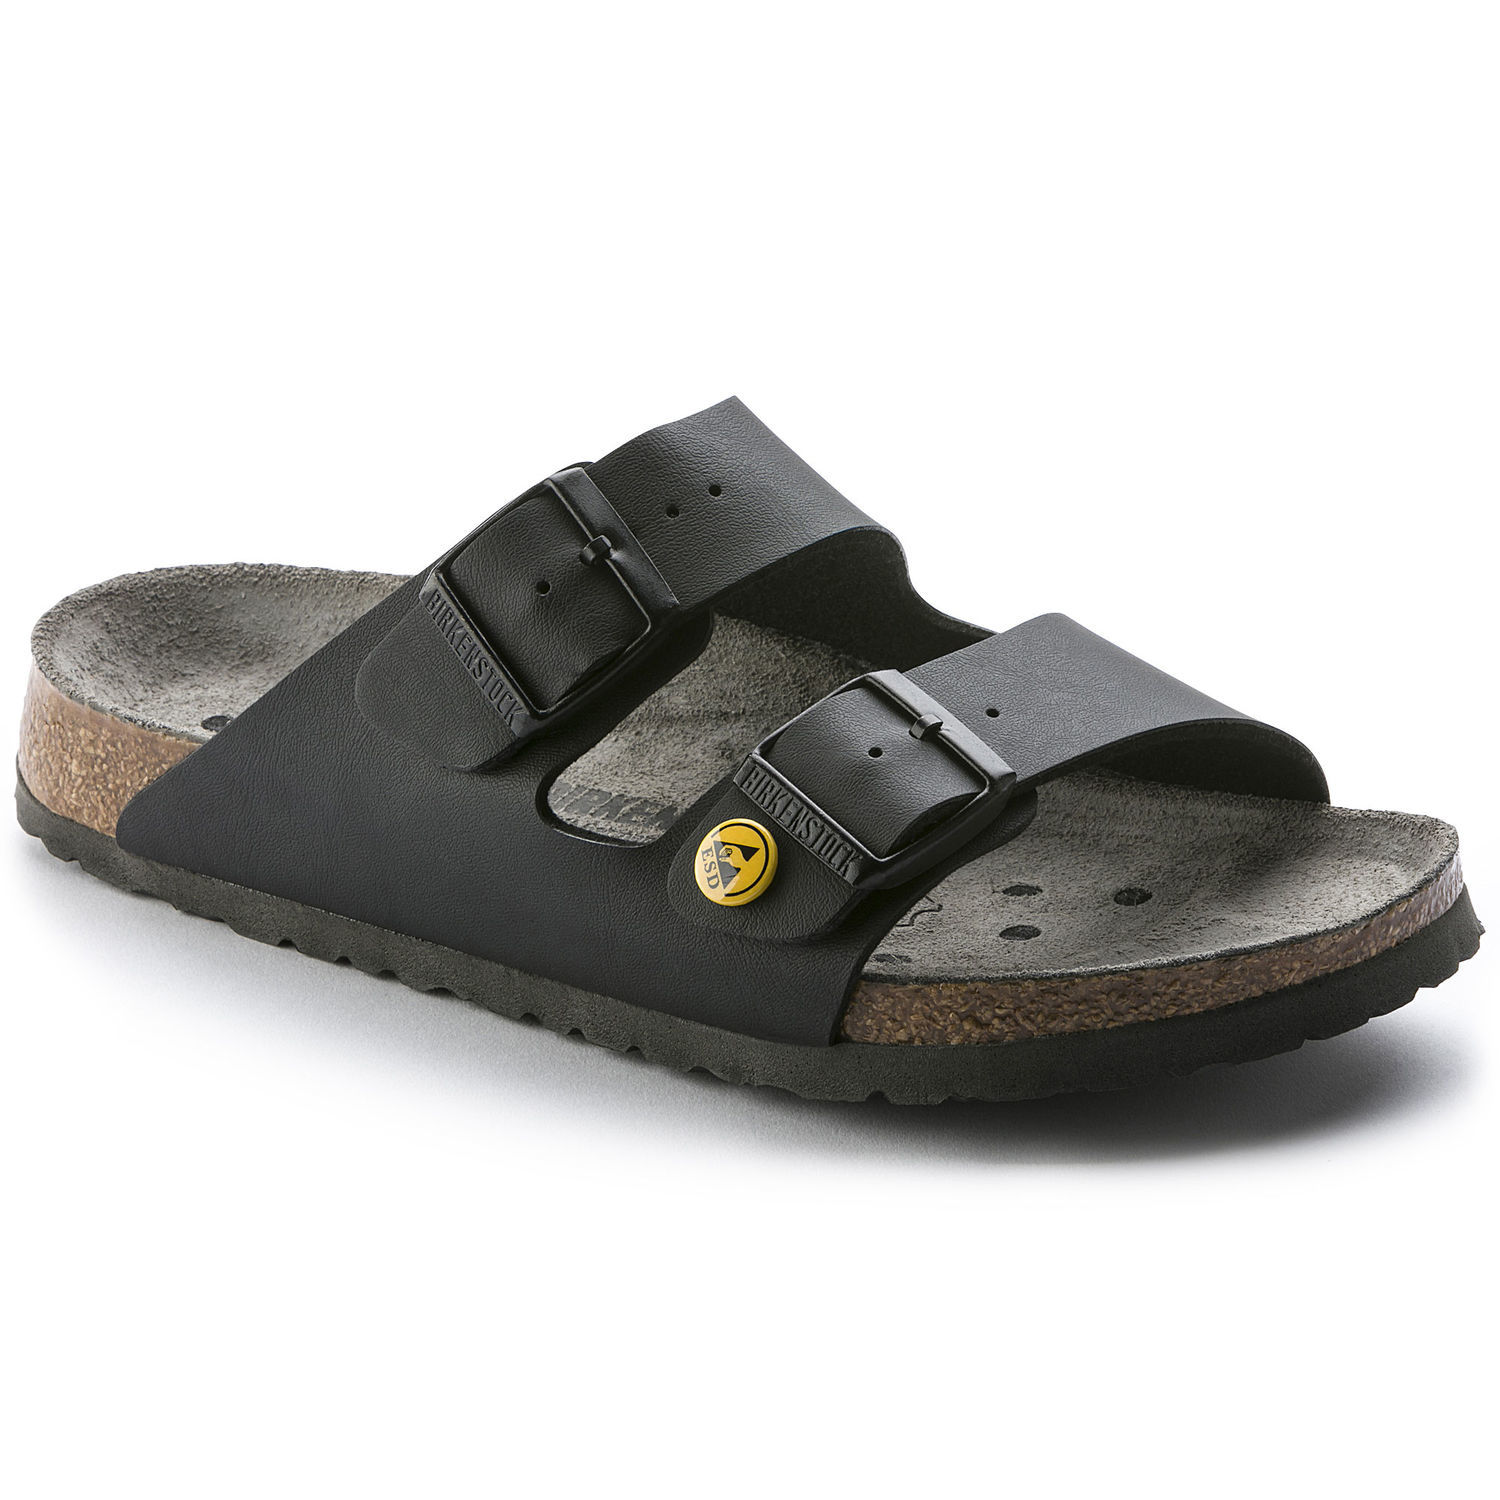 Image of   Sort Arizona ESD sandal fra Birkenstock - 42